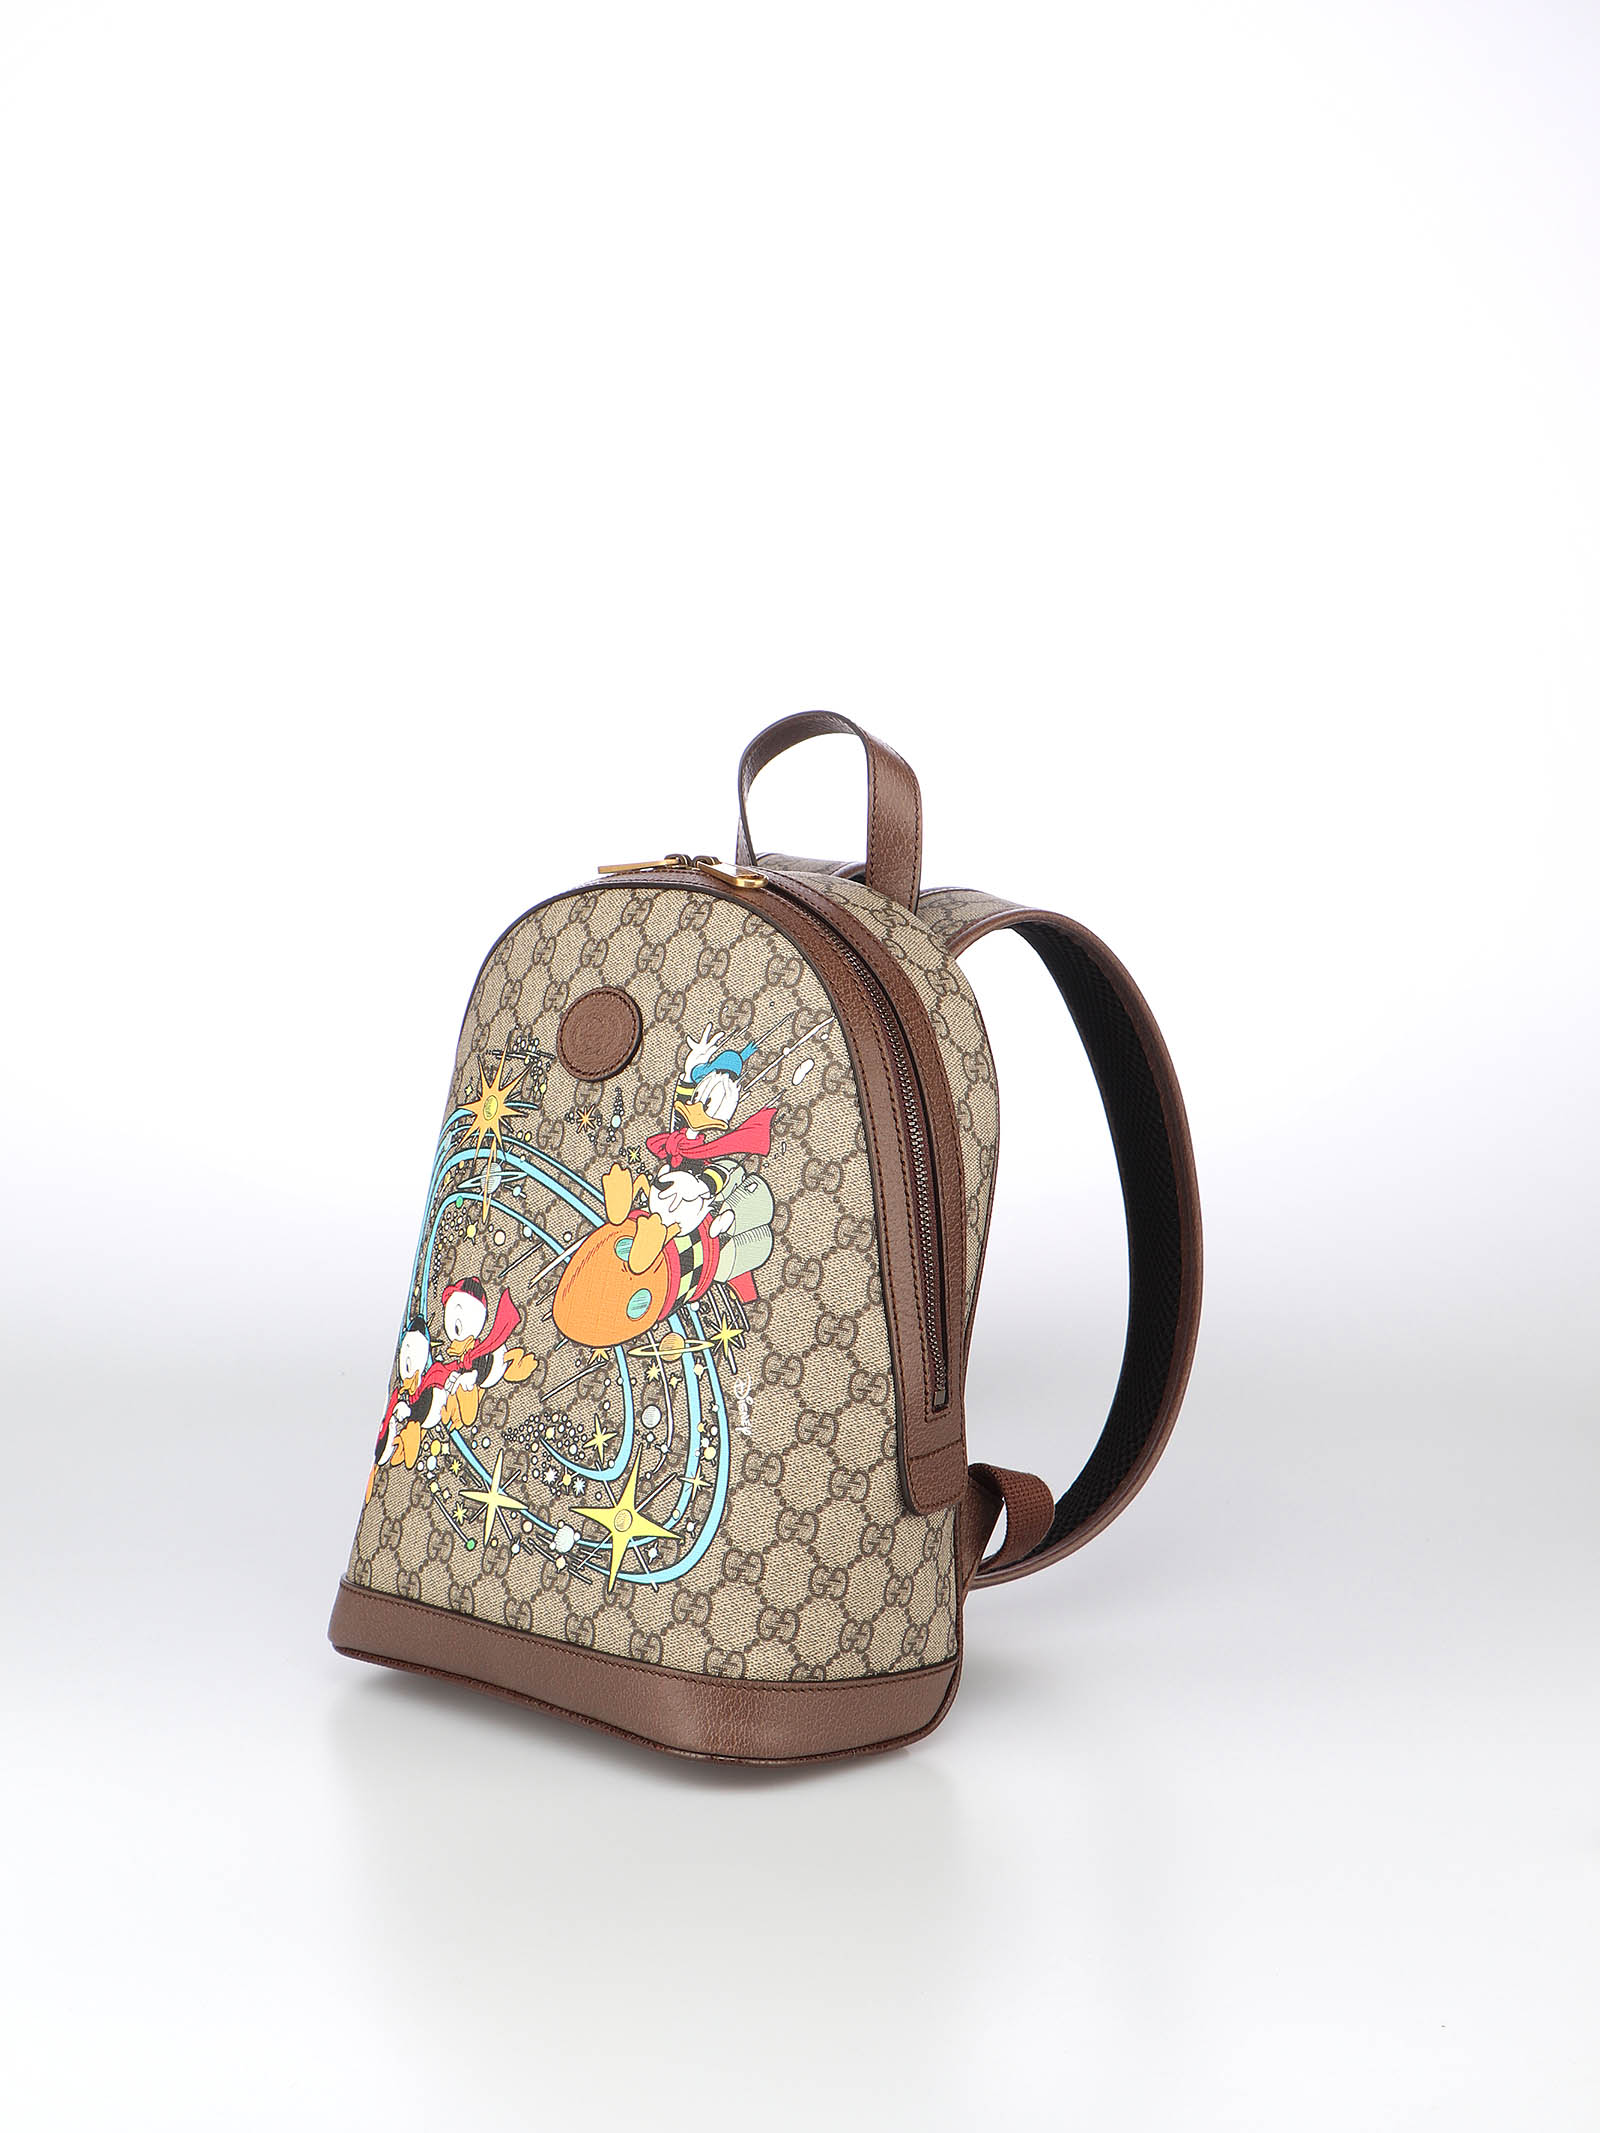 Picture of Gucci | GG Supreme Donald Duck Backpack